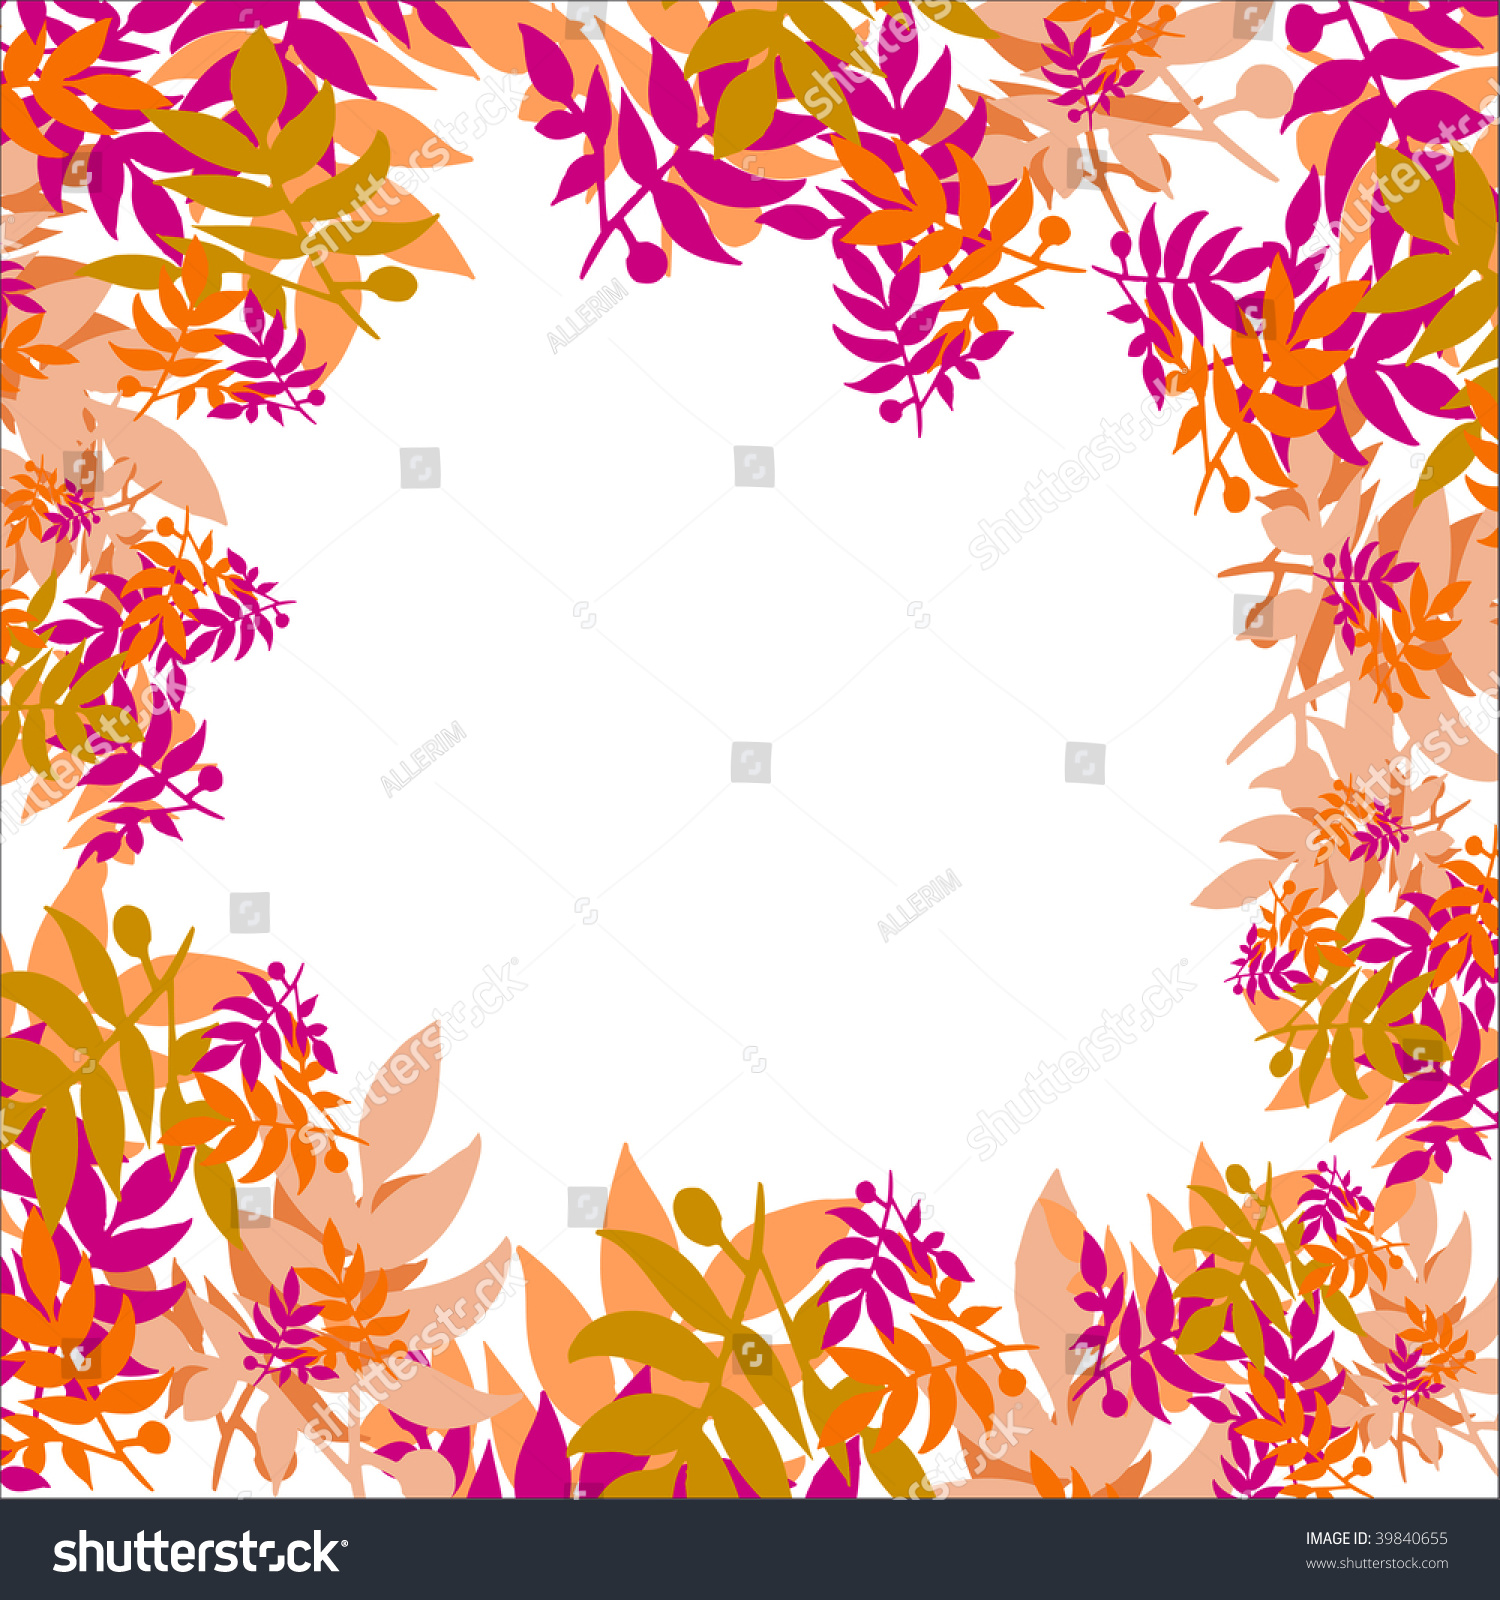 Autumn leaves decoration stock photo 39840655 shutterstock for Autumn leaf decoration